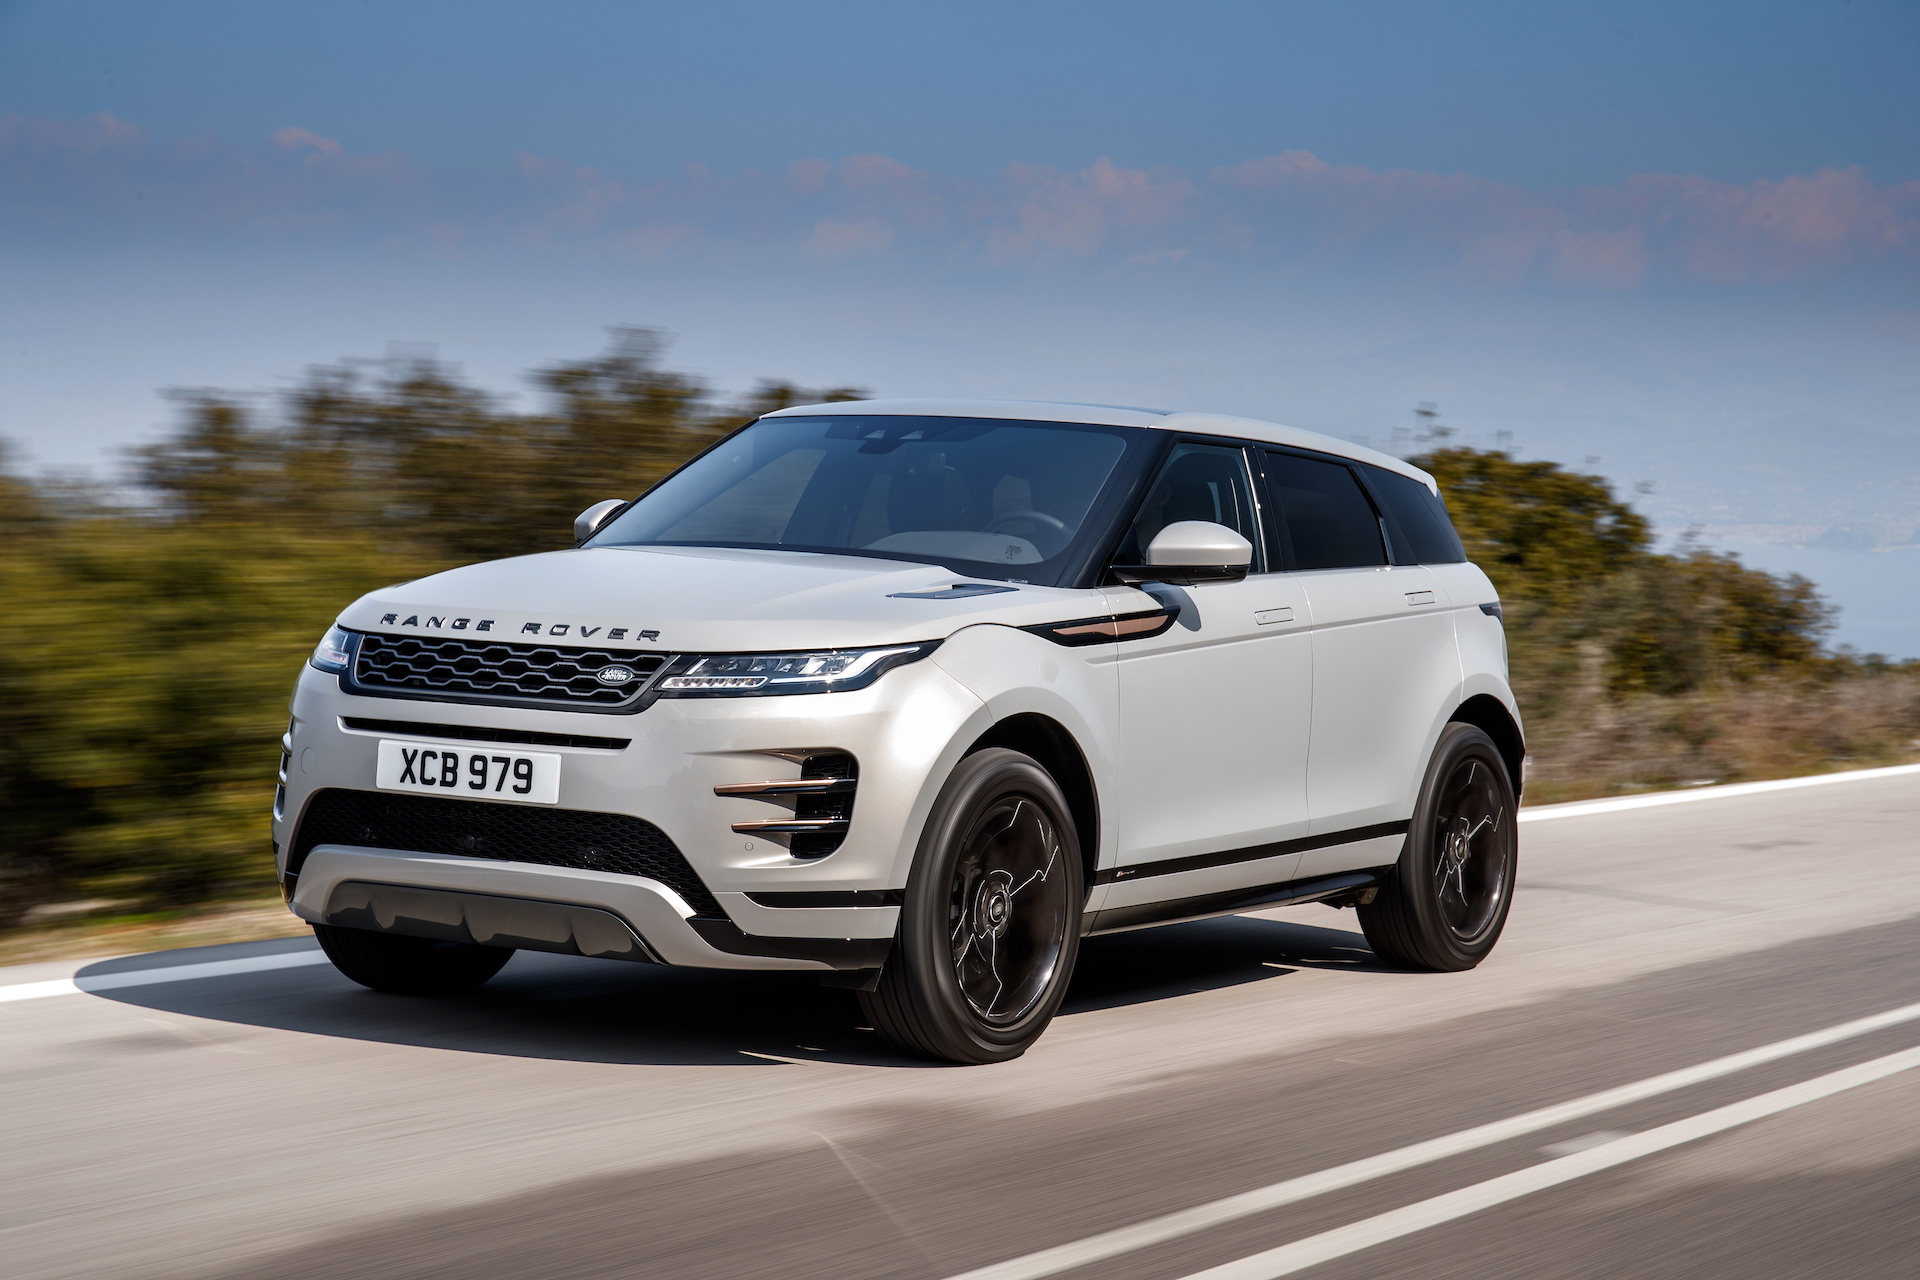 2020 land rover range rover evoque review ratings specs prices and photos the car connection. Black Bedroom Furniture Sets. Home Design Ideas